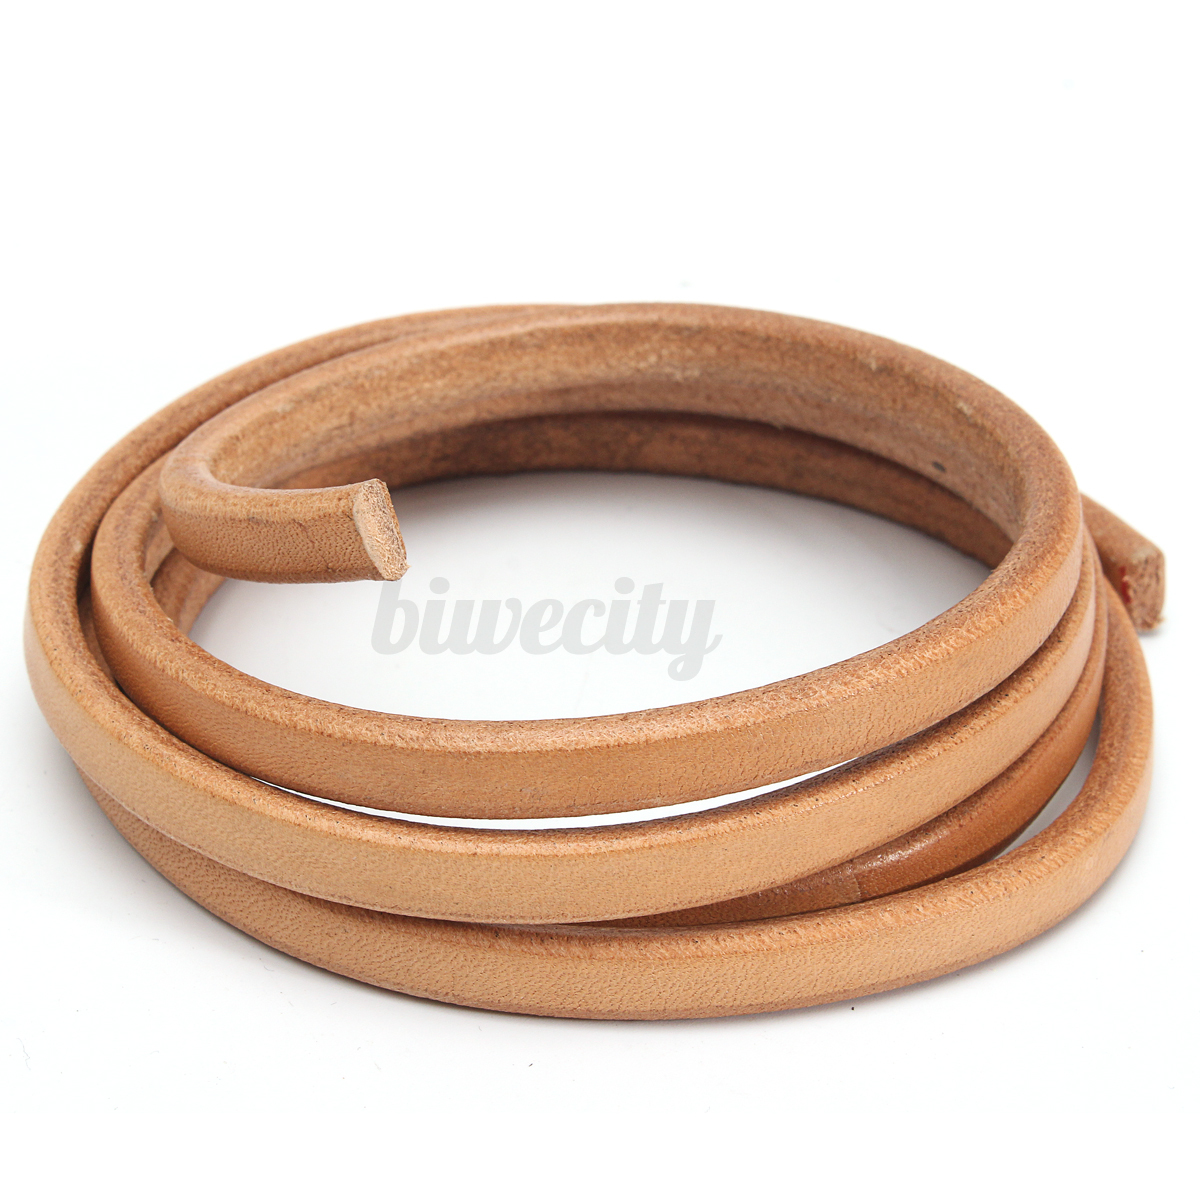 125cm leather belt treadle parts 2 hooks for singer